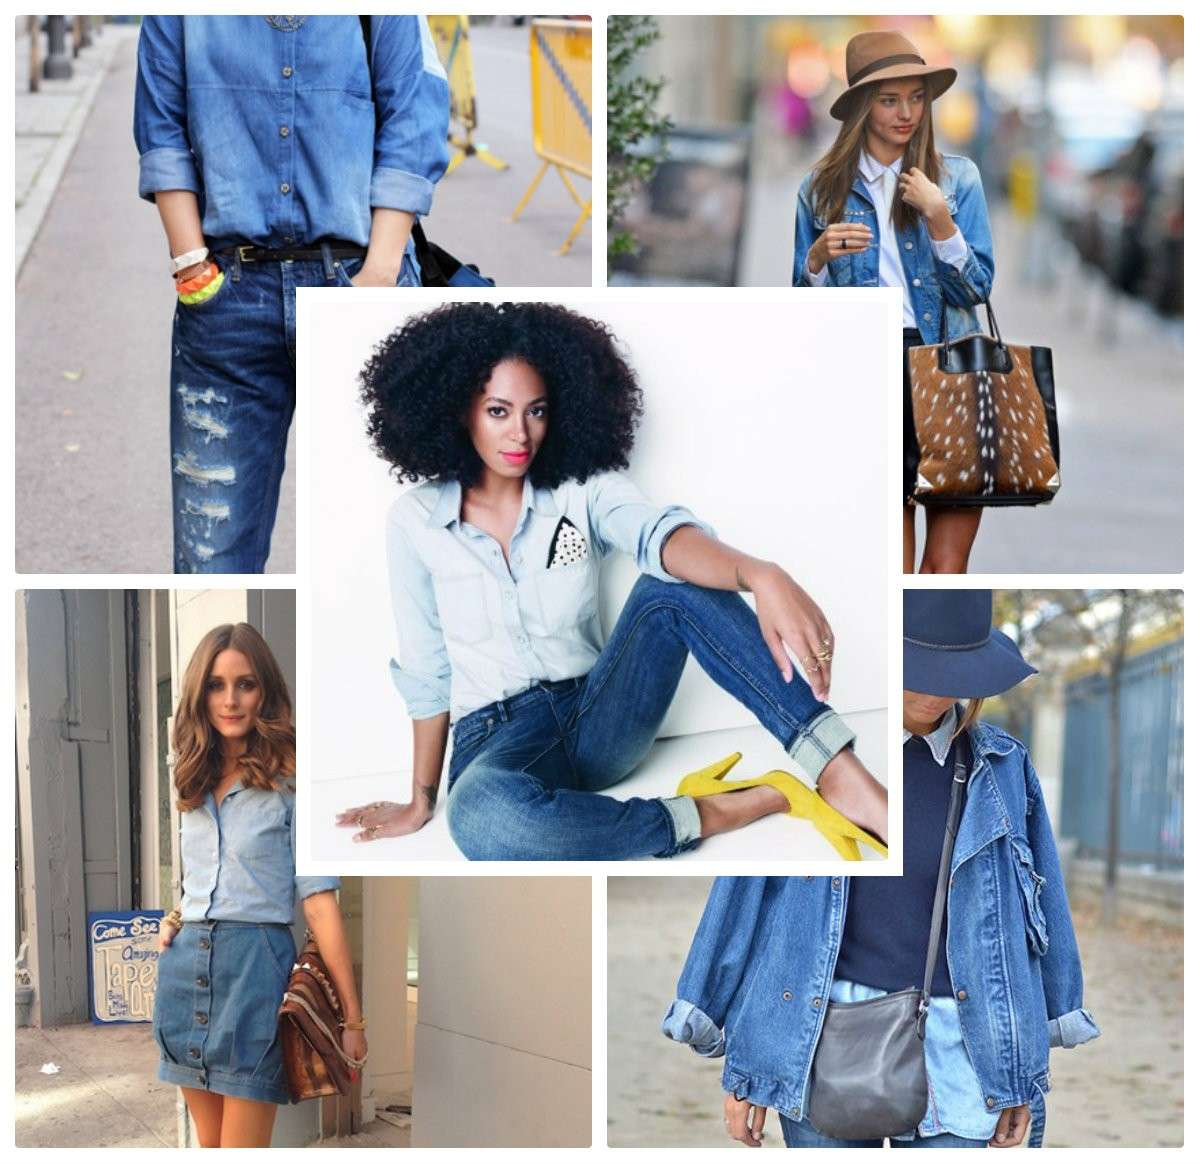 Total look in jeans